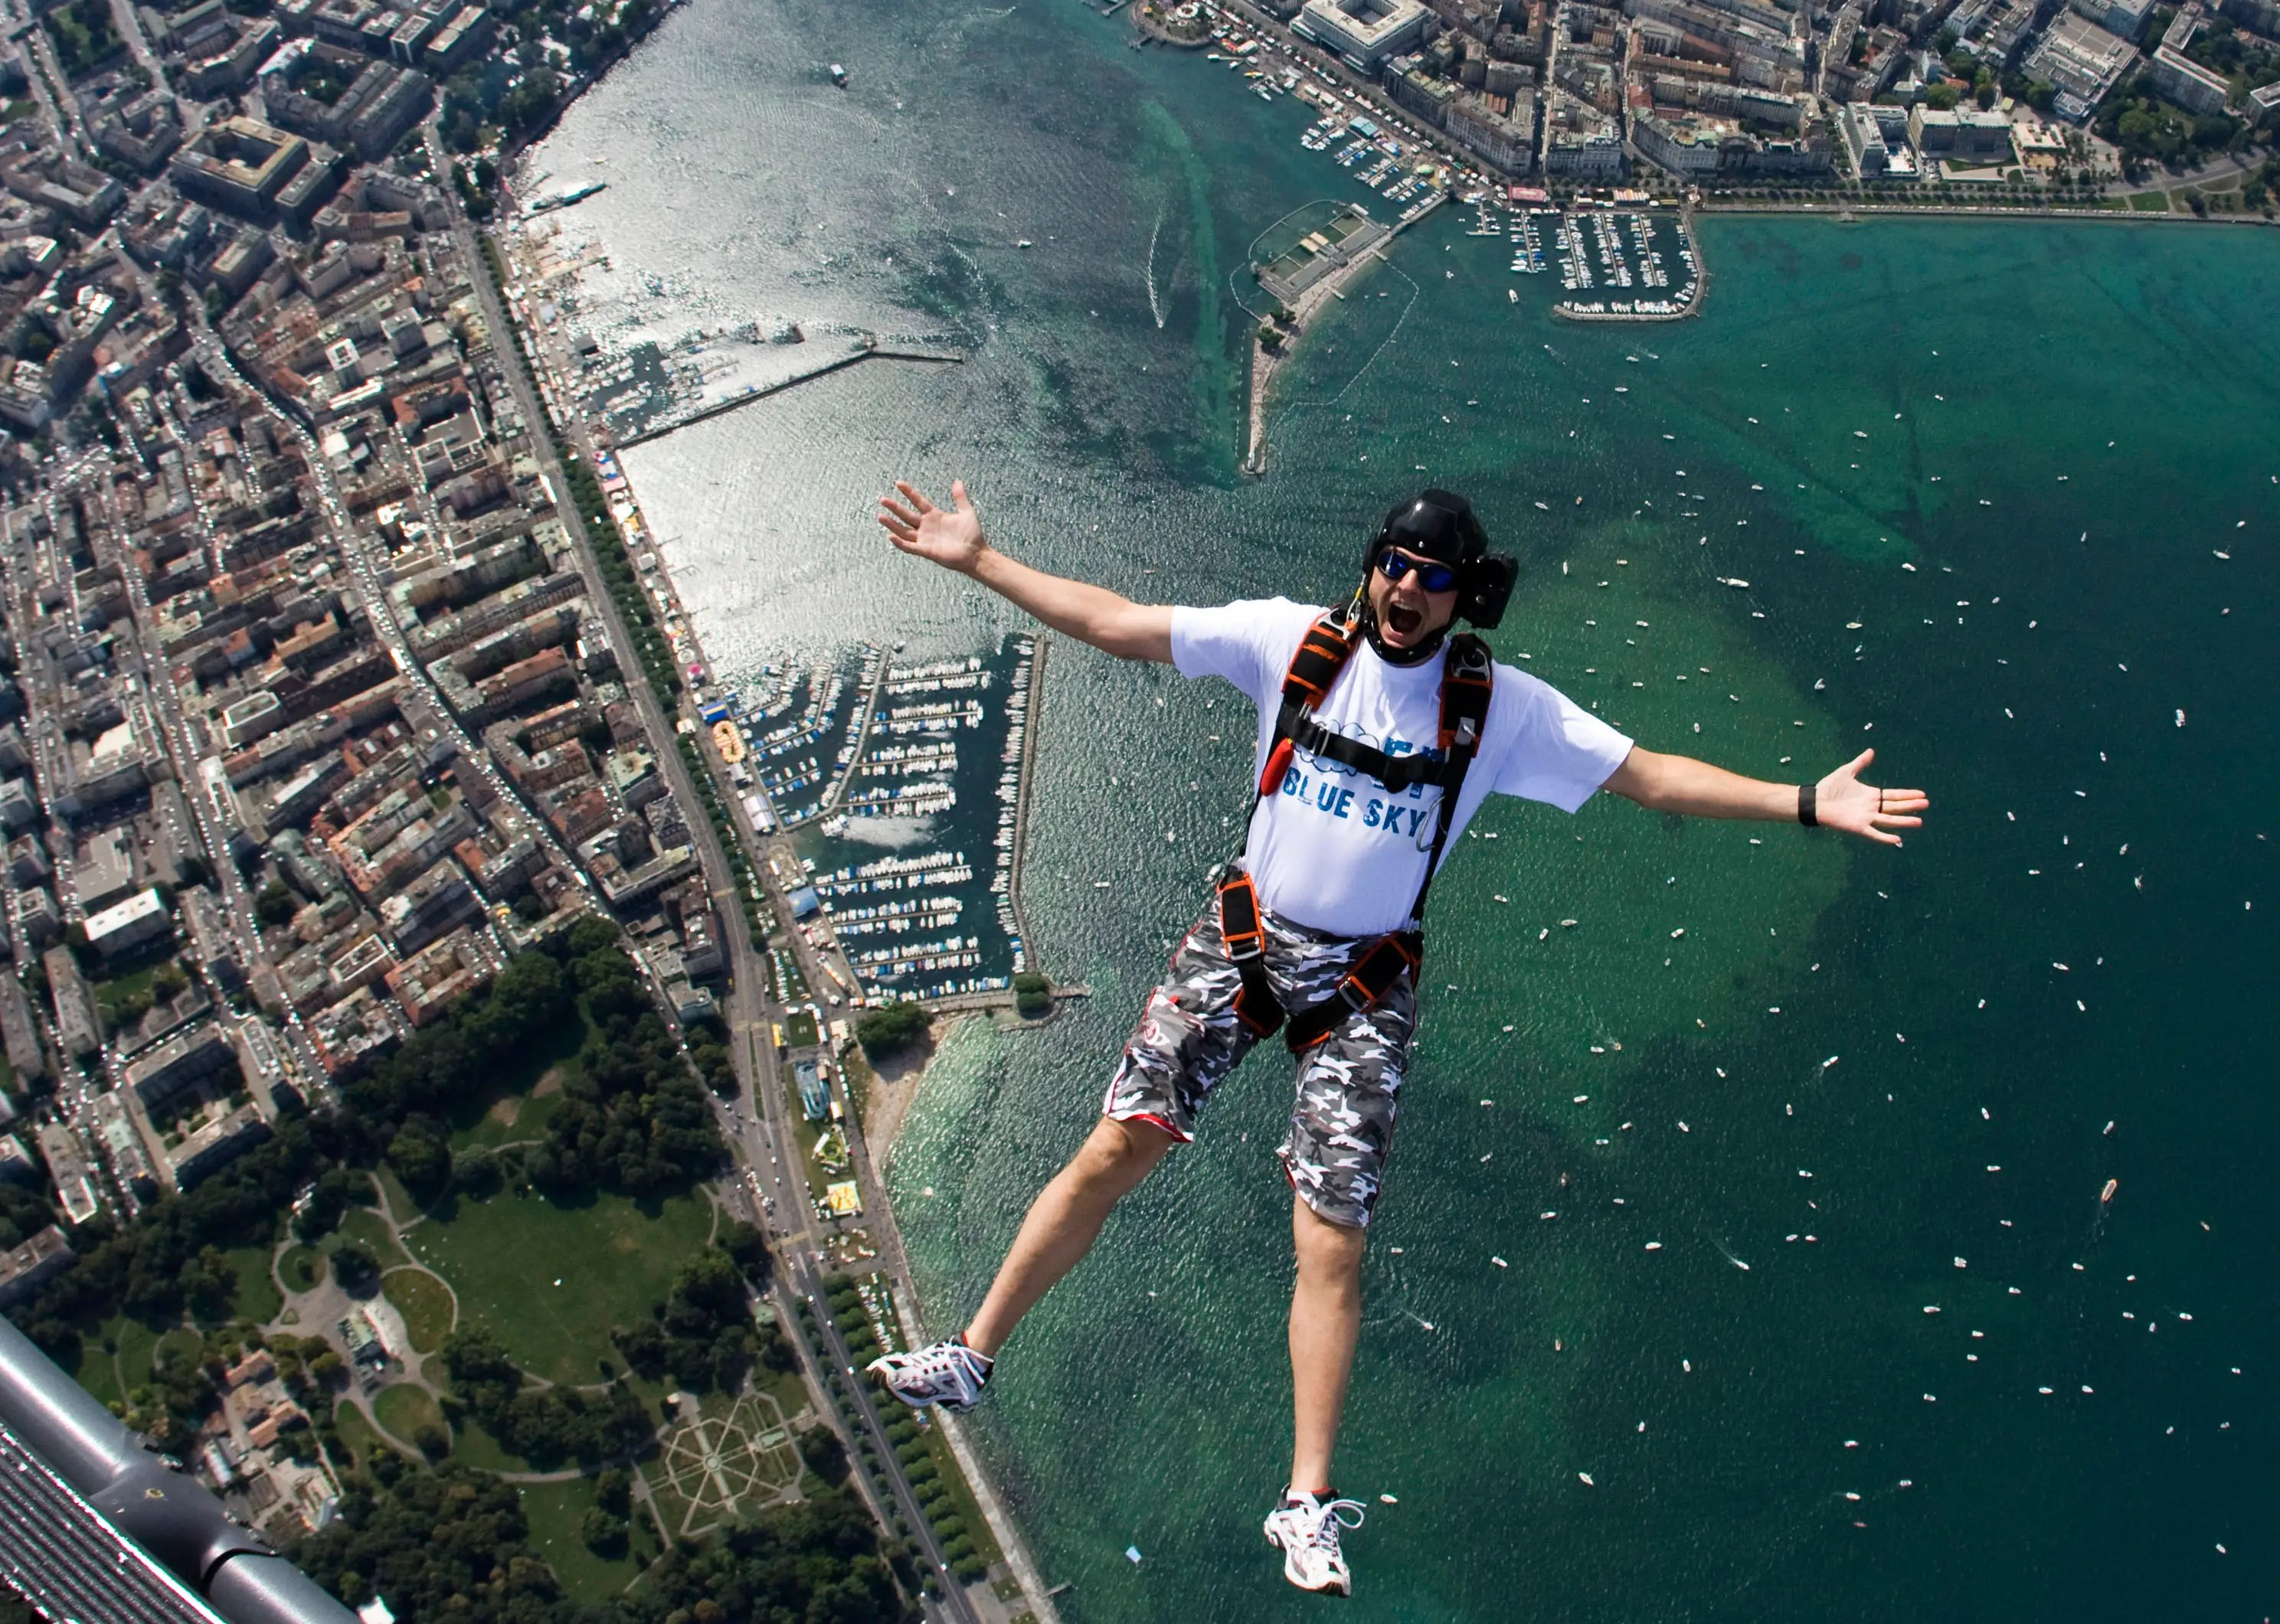 Christoffe Jonin of the FF Blue Sky Team jumps out of a helicopter with a parachute, 1,300 meters above Lake Leman (Lake Geneva) and the city of Geneva, during the final day of Fetes de Geneve.